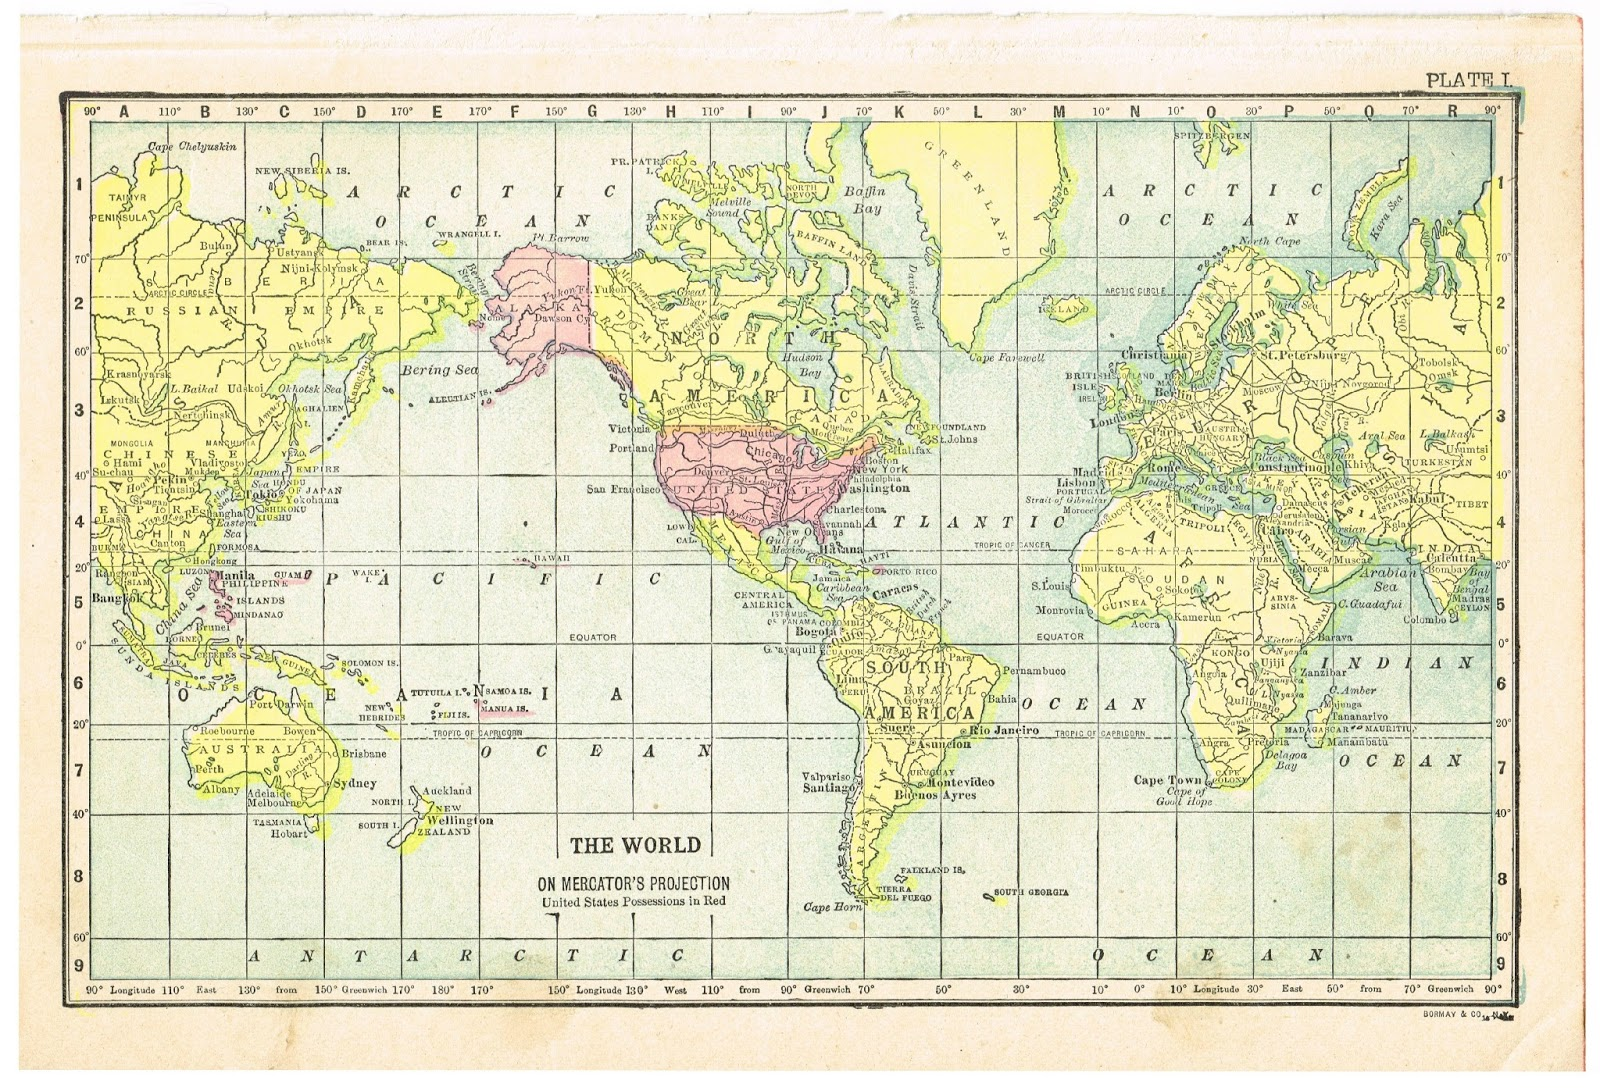 Antique Graphics Wednesday 1900 39 s Maps of the World ALL 50 States